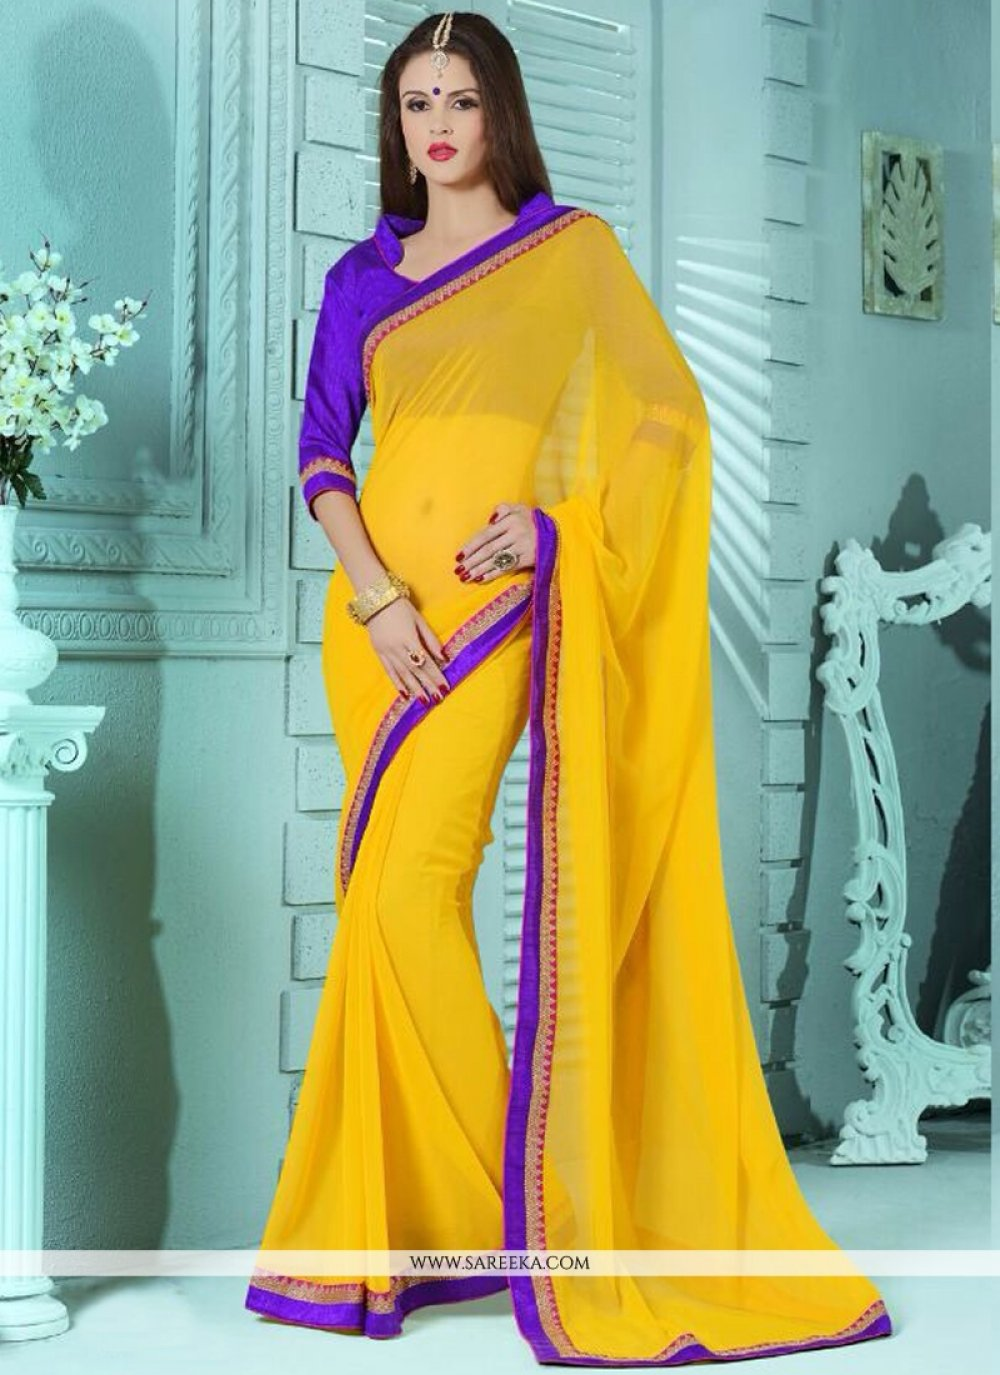 Bamber Georgette  Lace Work Casual Saree